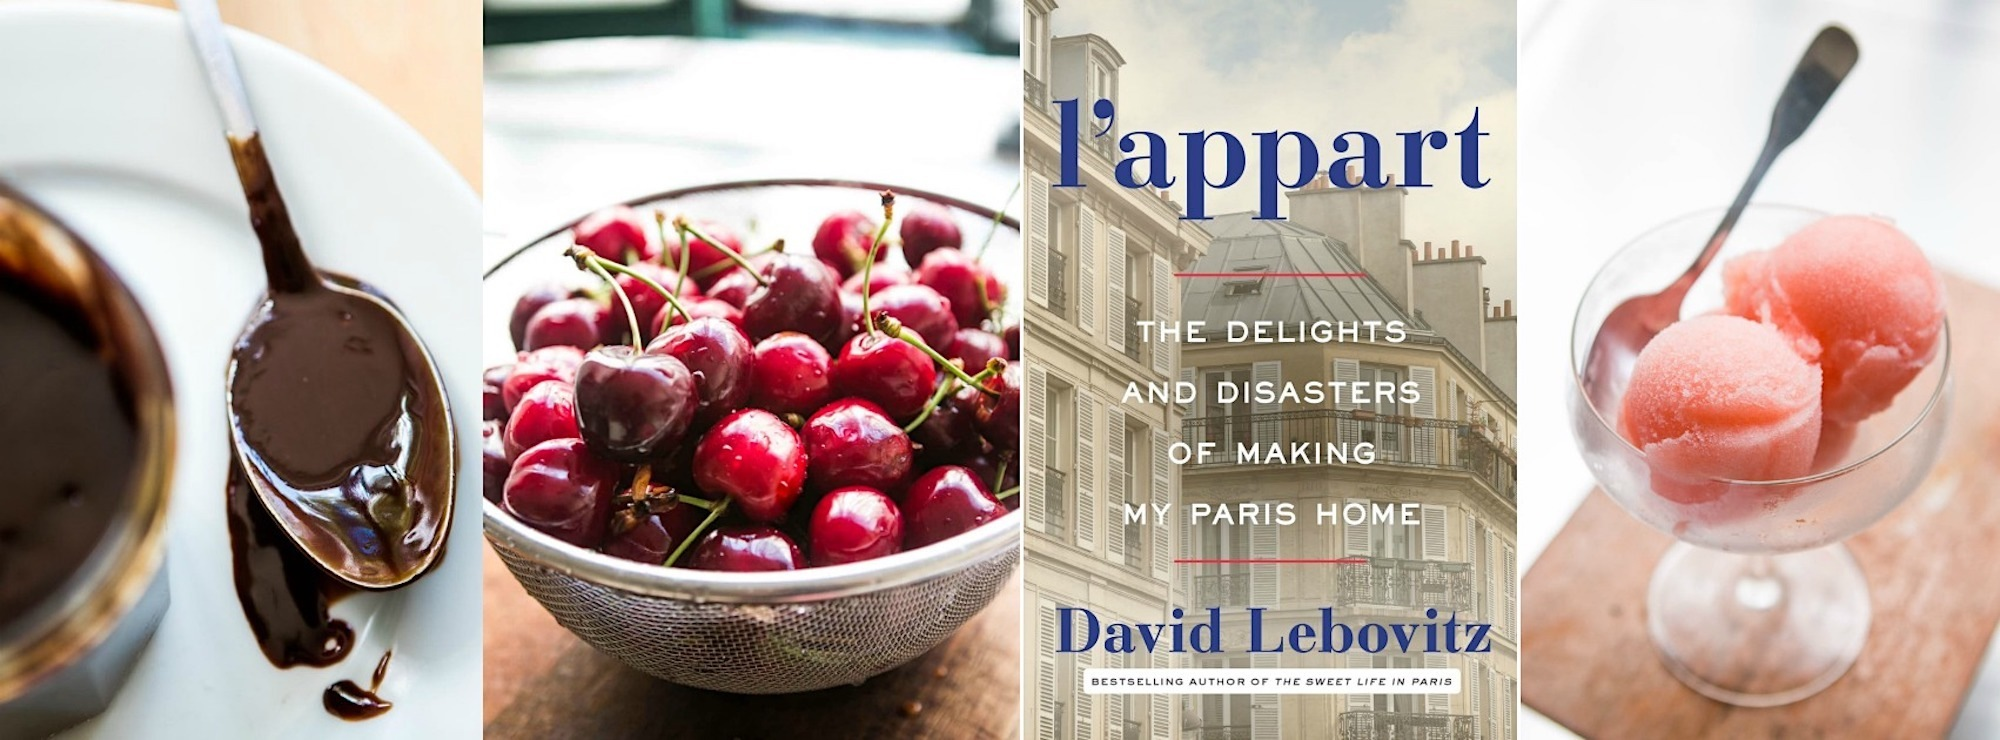 Book talks in April in Paris, include one at the American Library with American foodie and author David Lebovitz. who loves chocolate, cherries and sorbet.